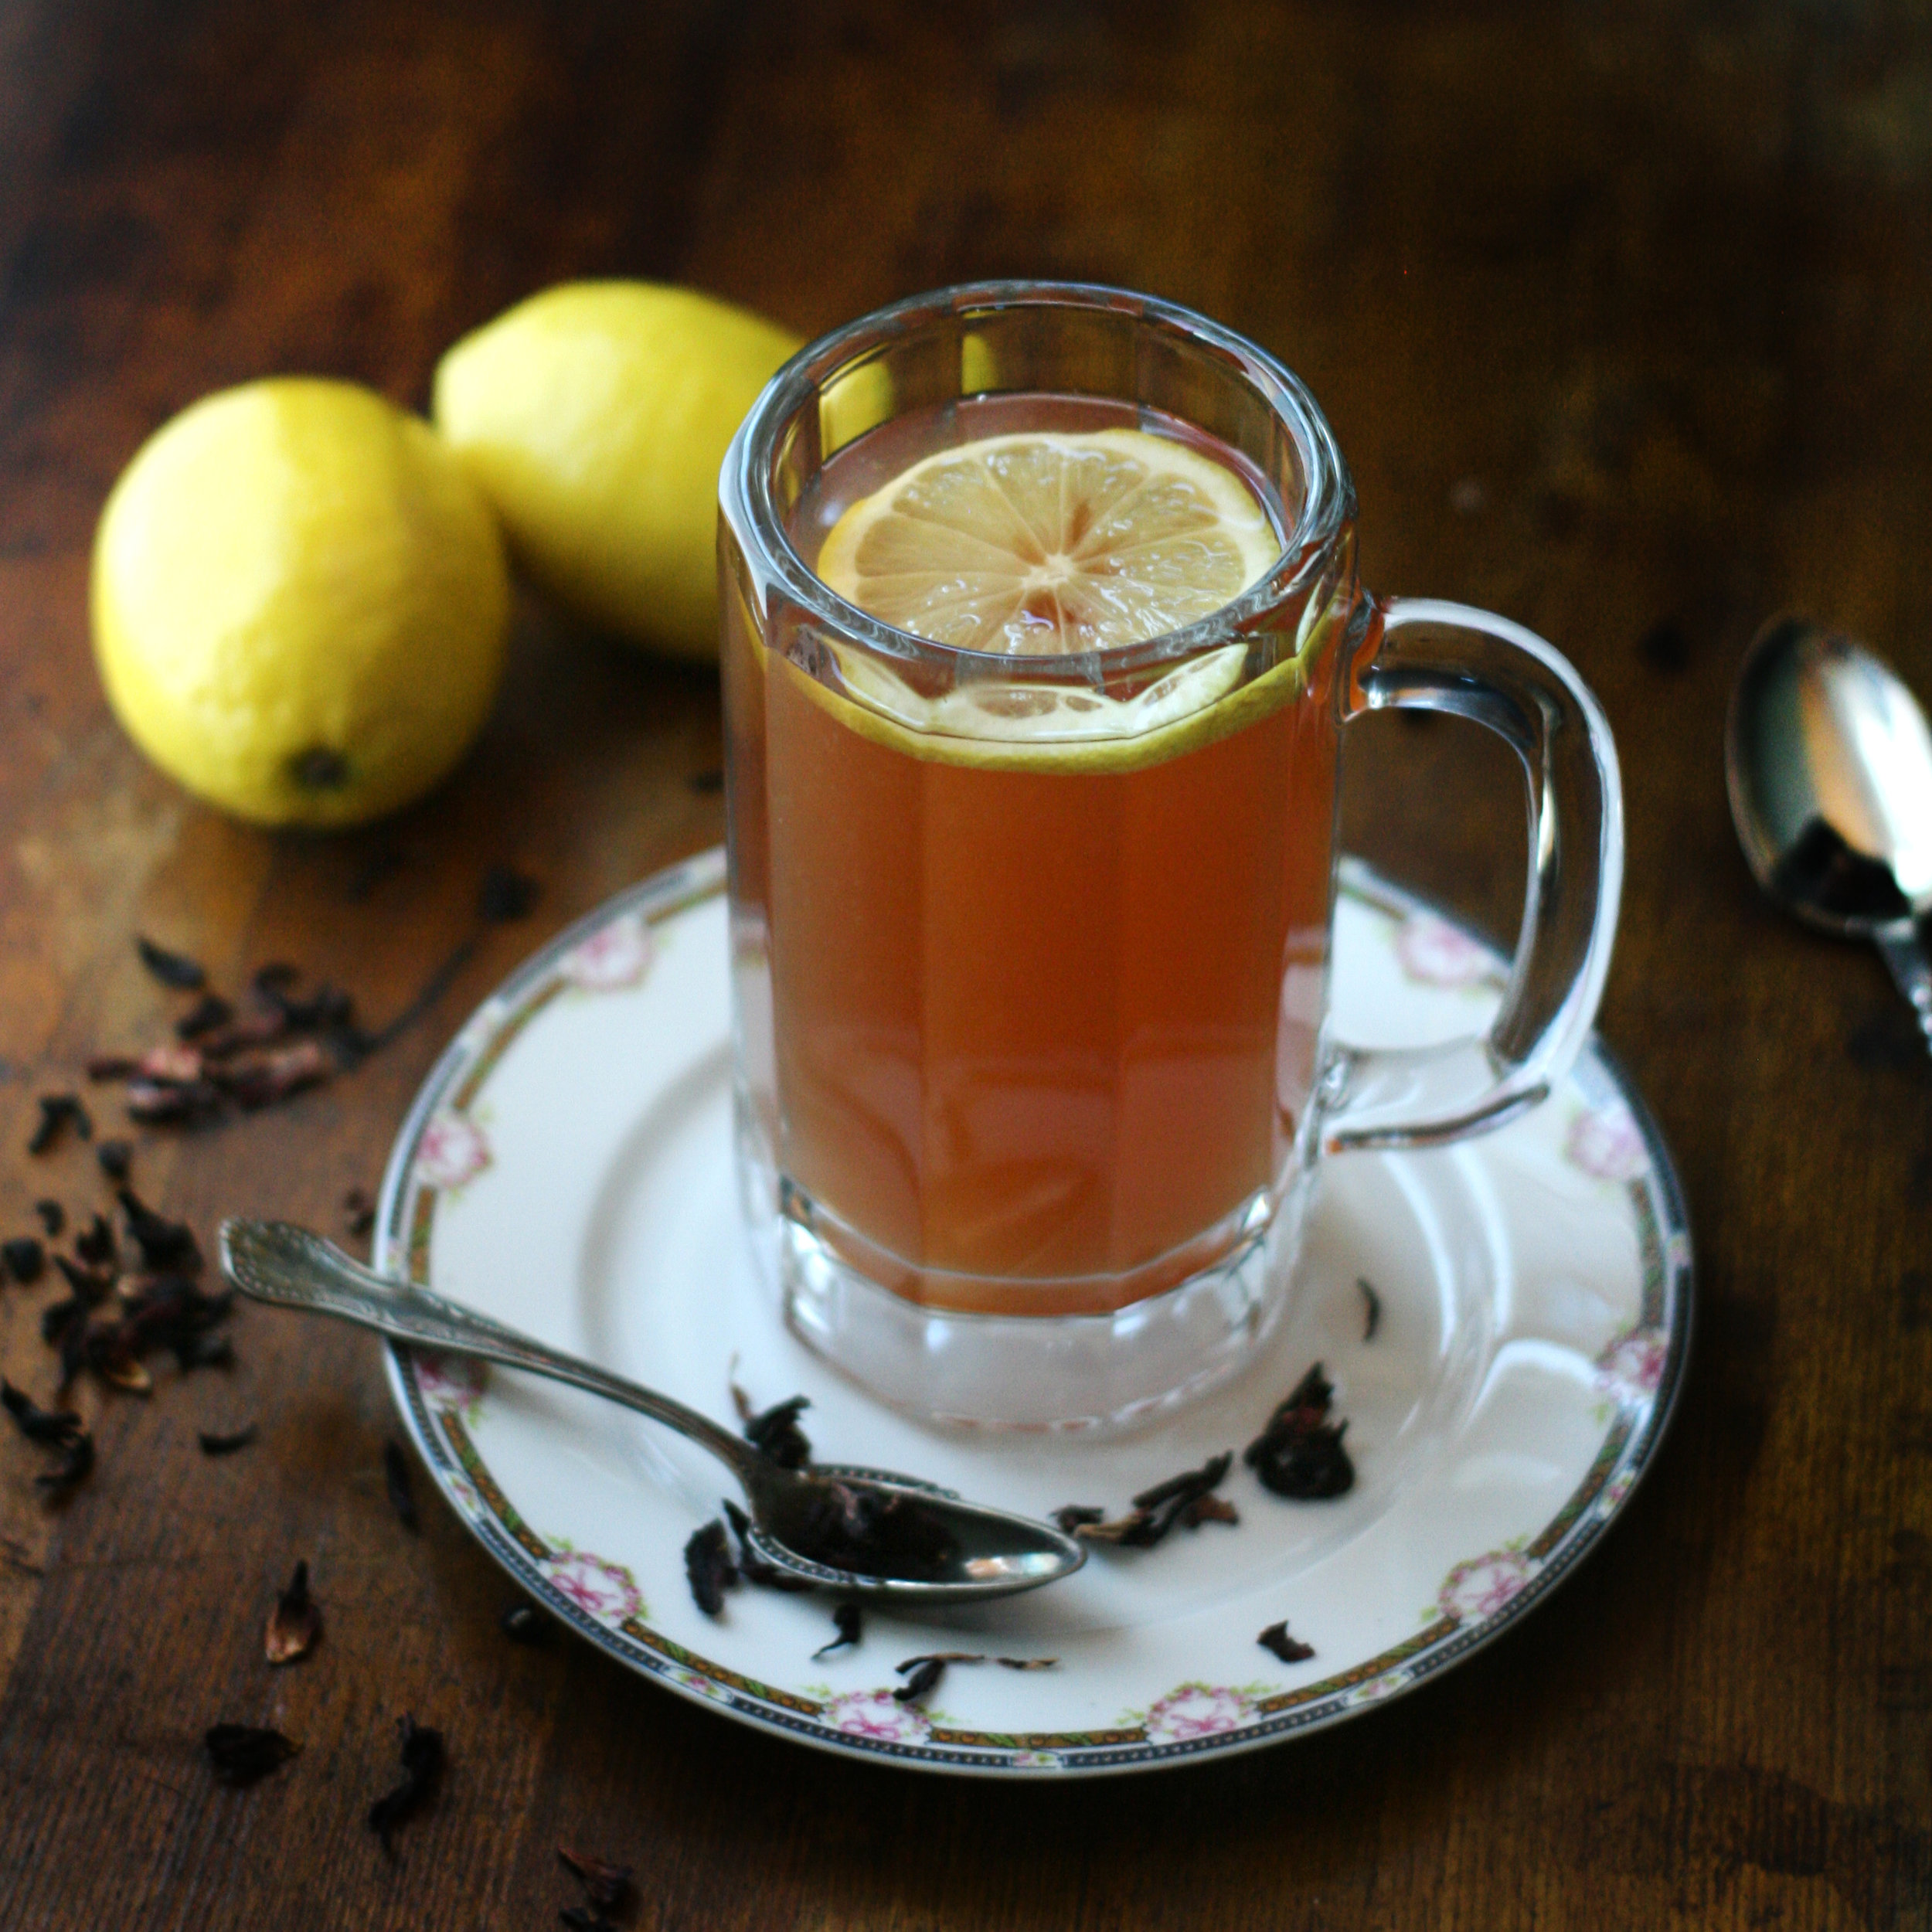 Tulsi Hot Toddy - Organic Cinnamon Rose Holy Basil Hot Toddy - Stress relieving tulsi basil cocktail